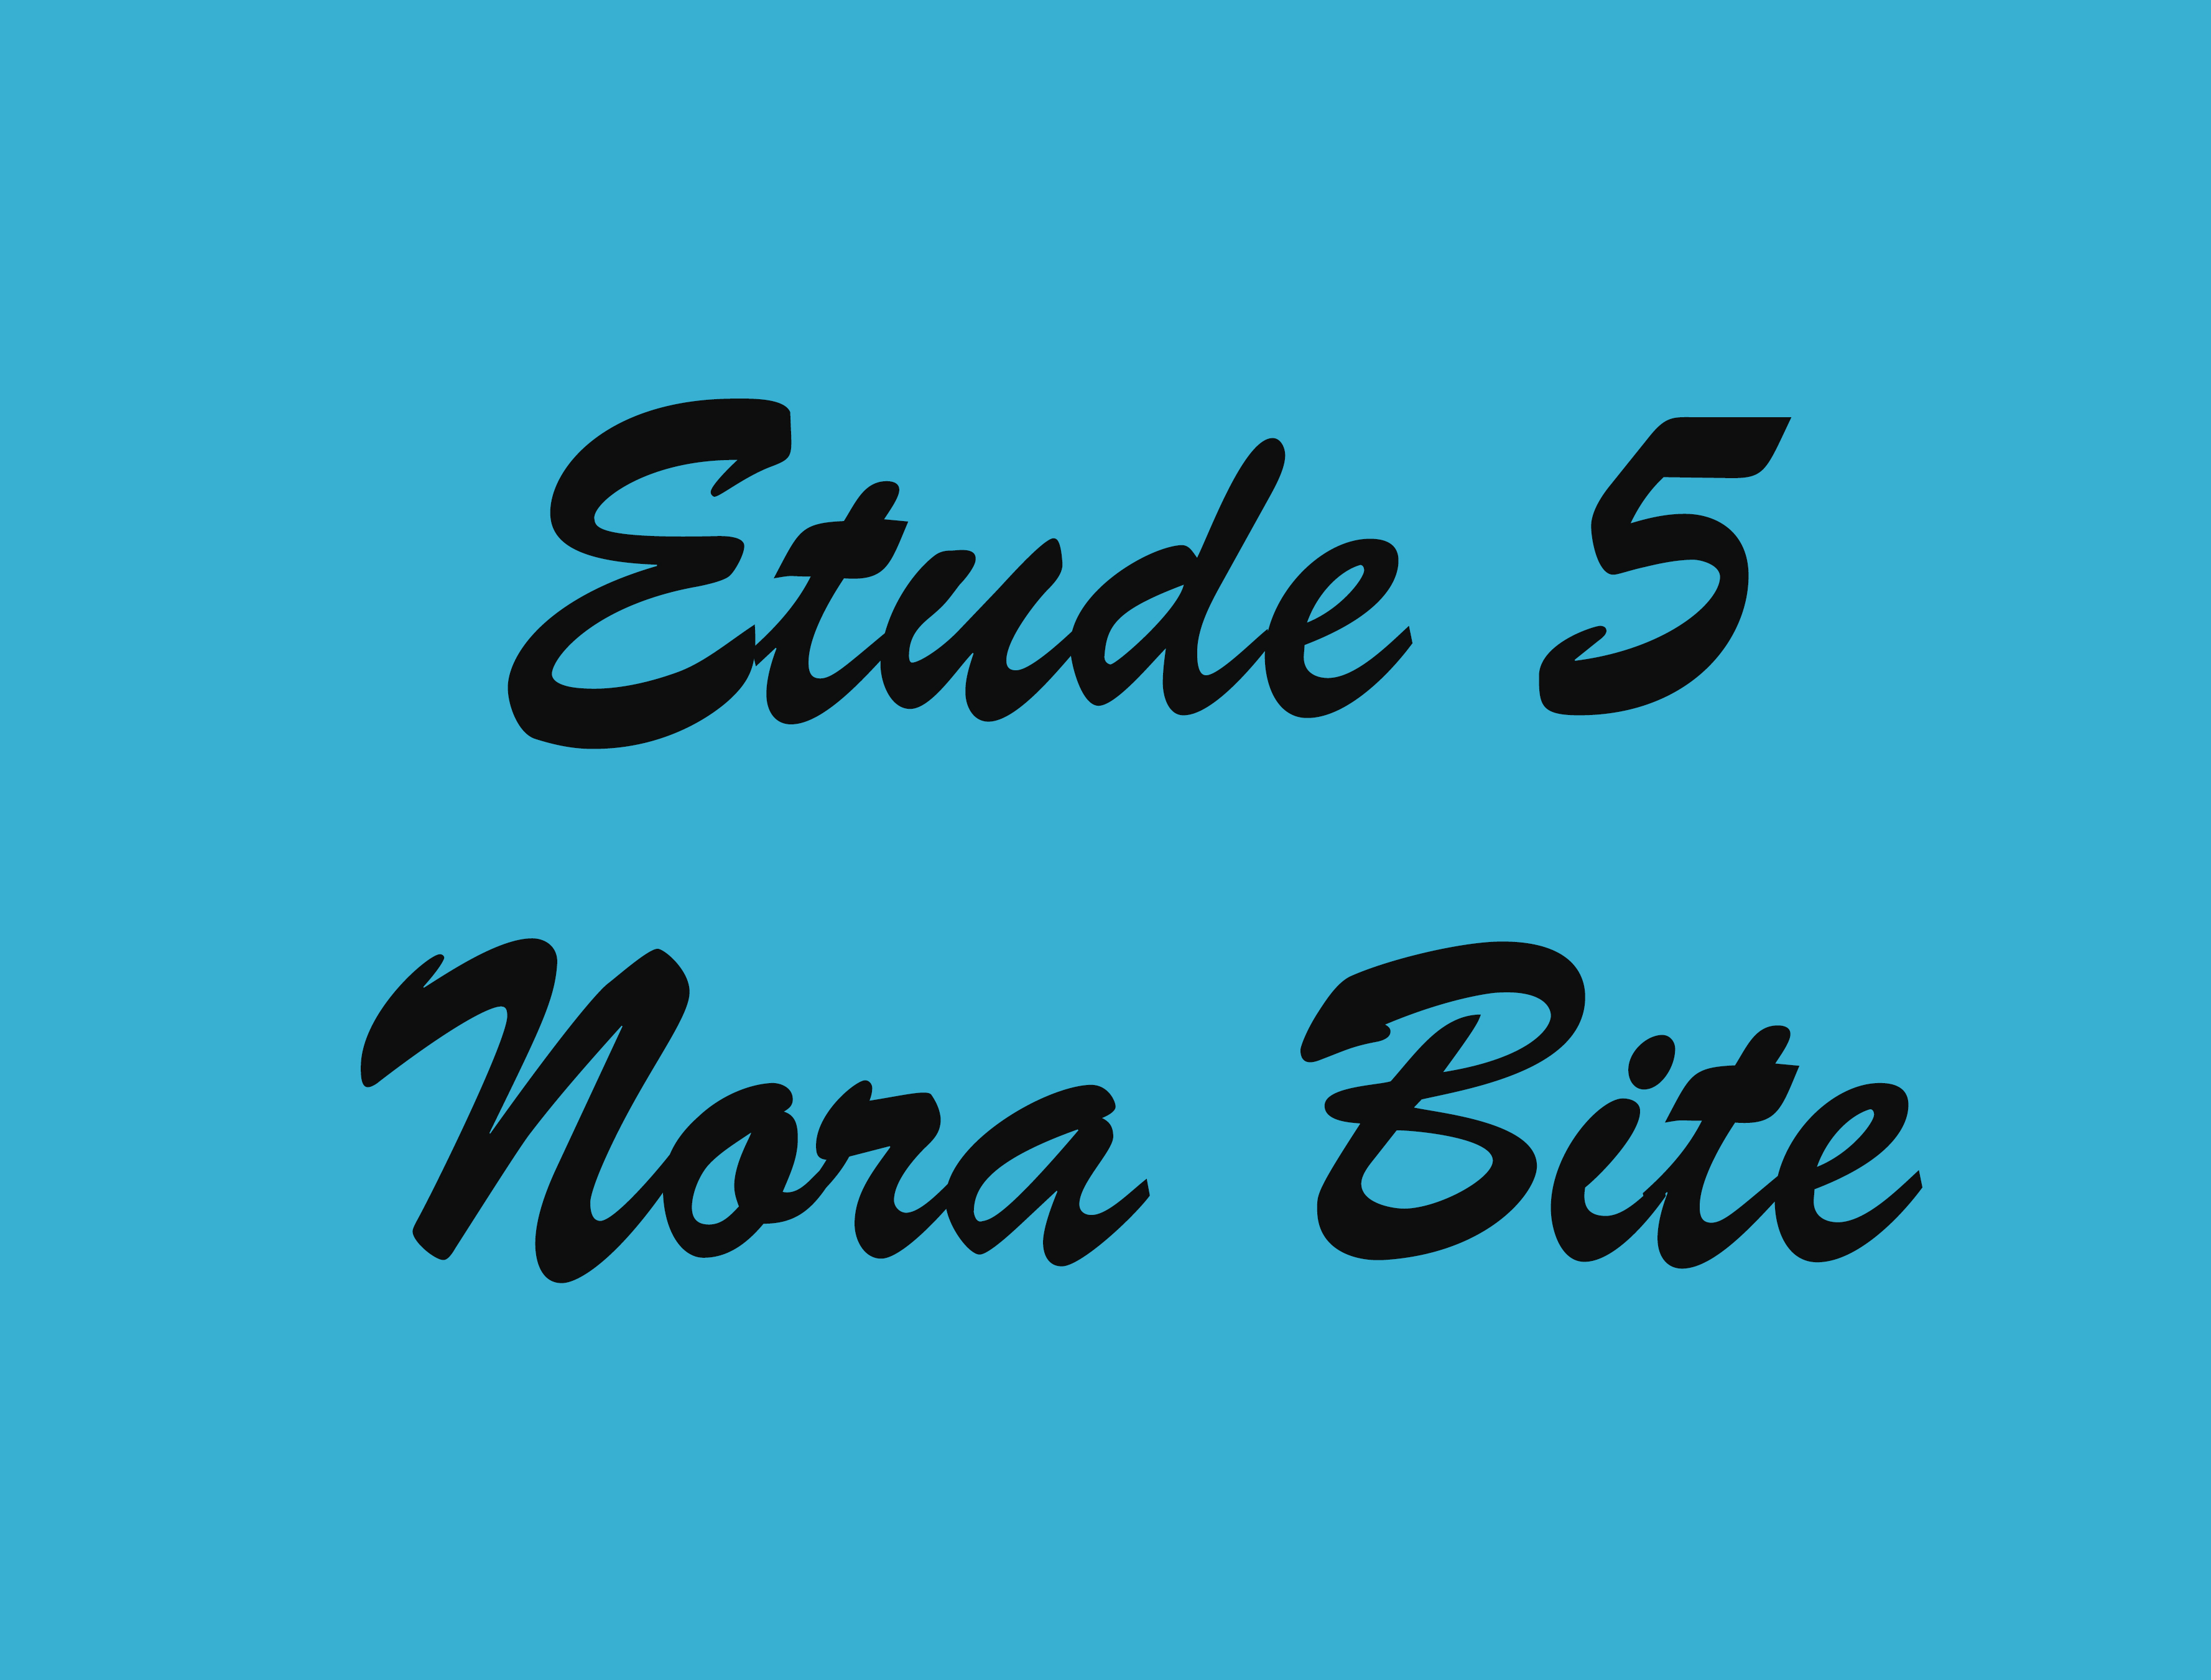 Odd time signature exercises for jazz guitar. Etude 5 composed by Nora Bite. Some modern jazz guitar voicings added, fingerstyle and chord melody playing and jazz lines.